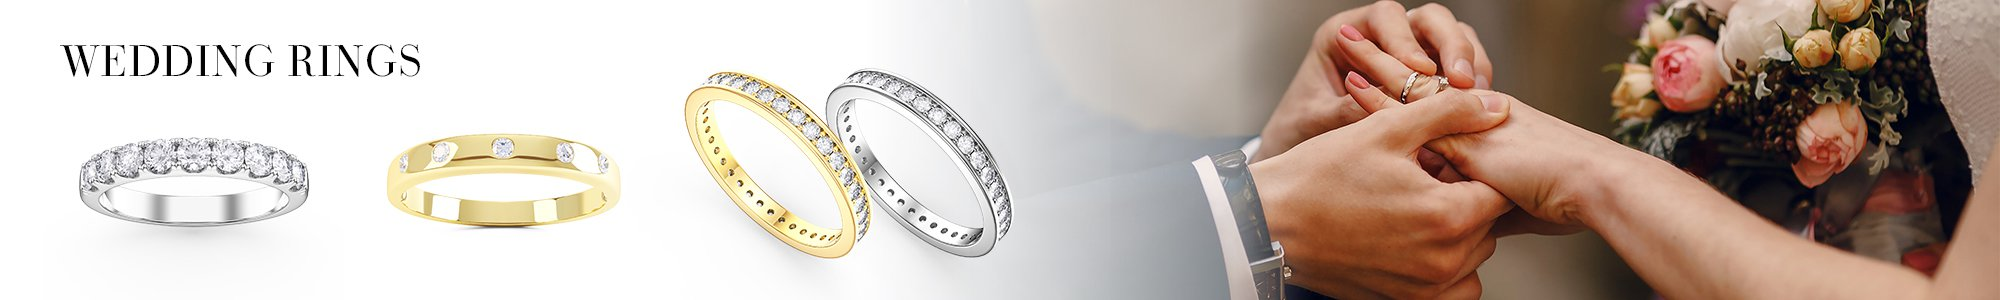 Wedding Rings - From White Sapphire set in Silver to Diamonds set in 18ct Gold or Platinum.